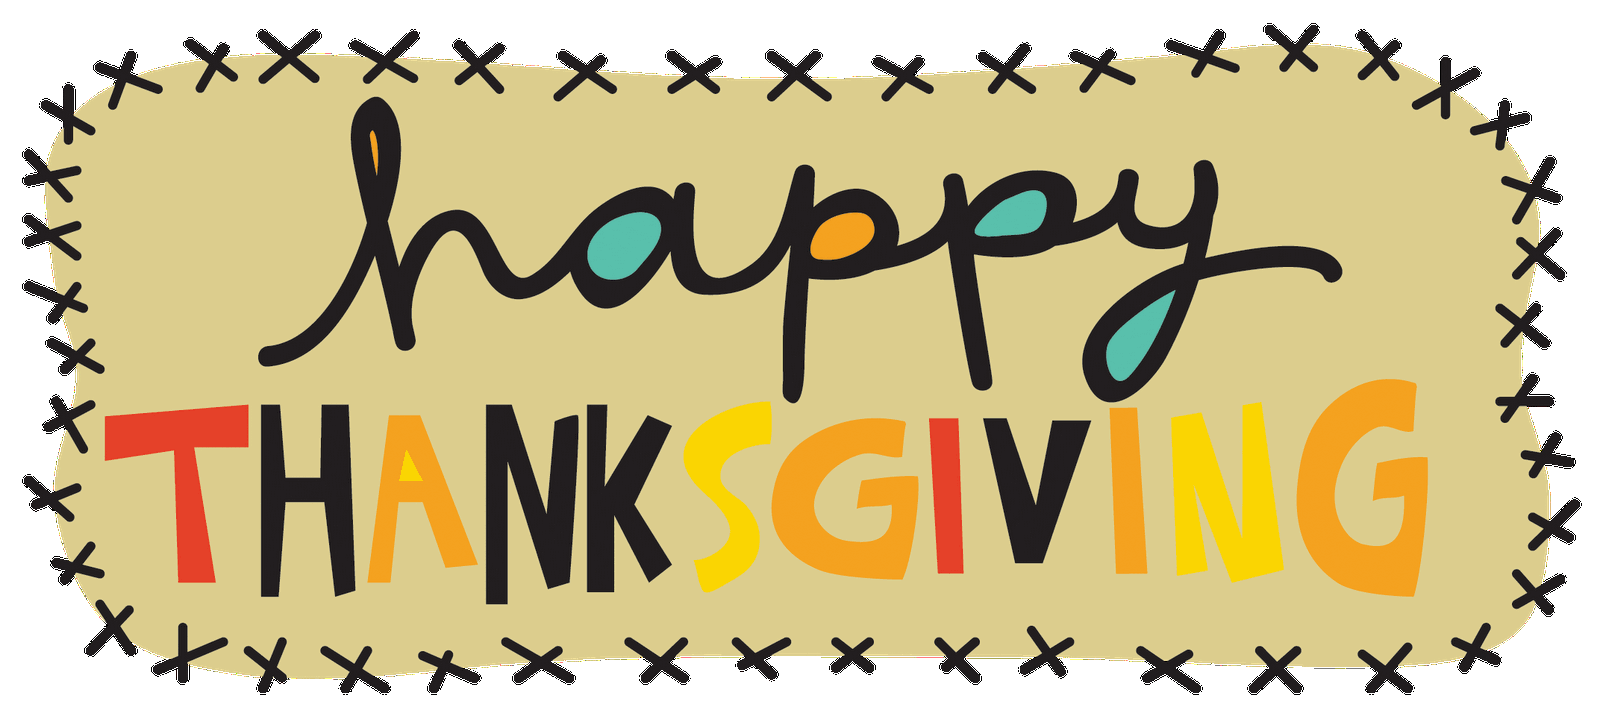 Clipart of blessed thanksgiving png library Thanksgiving Clipart For Kids at GetDrawings.com | Free for personal ... png library